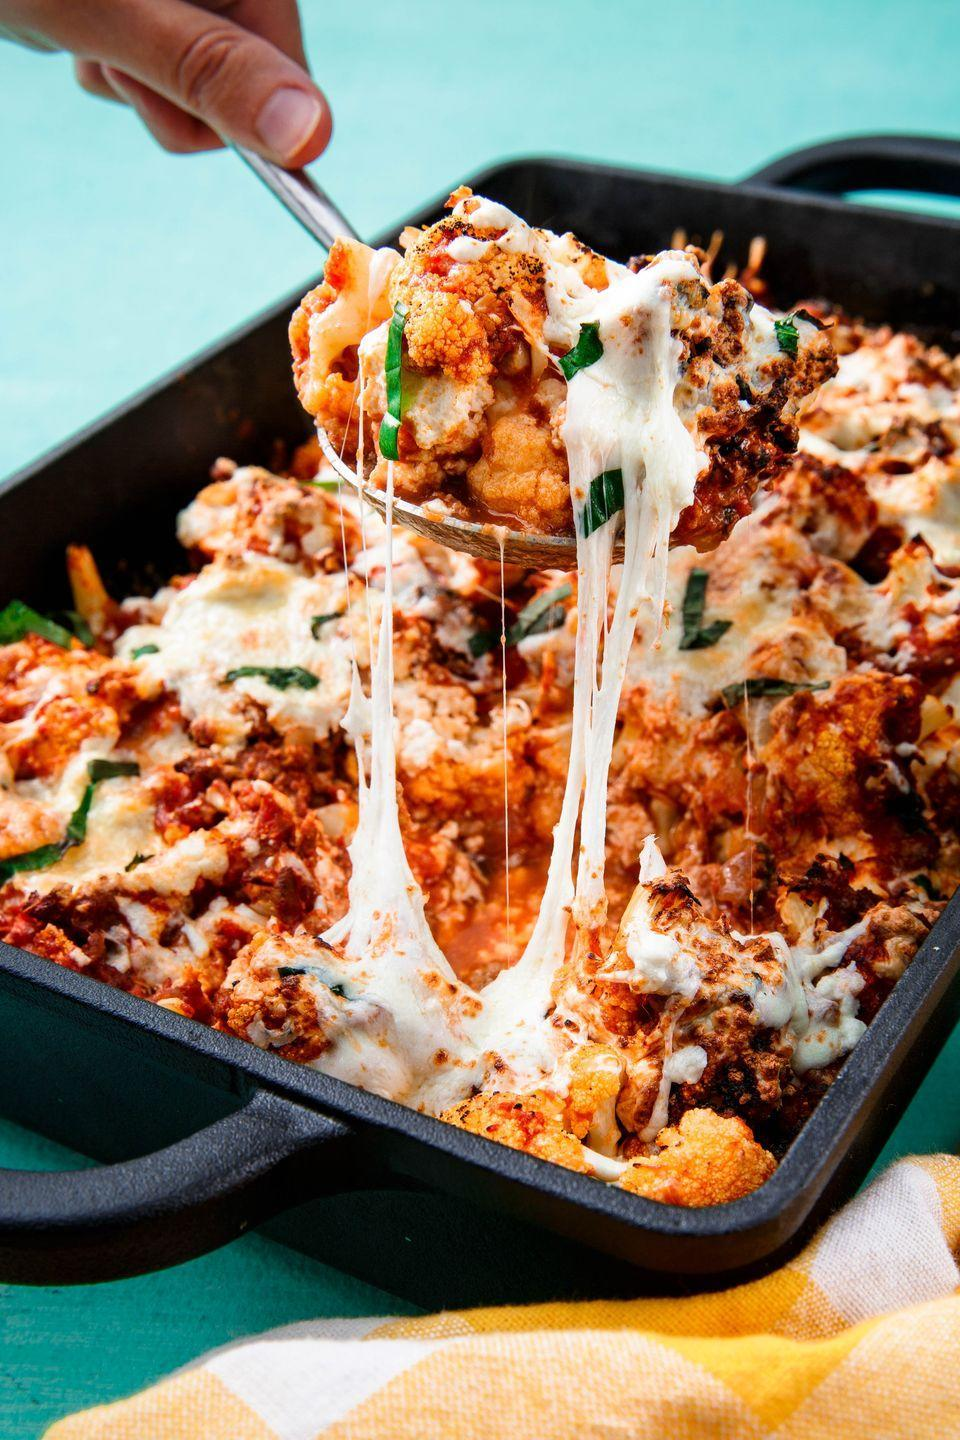 "<p>Don't miss out on Italian food just because you're cutting carbs.</p><p>Get the recipe from <a href=""https://www.delish.com/cooking/recipe-ideas/recipes/a57630/cauliflower-baked-ziti-recipe/"" rel=""nofollow noopener"" target=""_blank"" data-ylk=""slk:Delish"" class=""link rapid-noclick-resp"">Delish</a>.</p>"